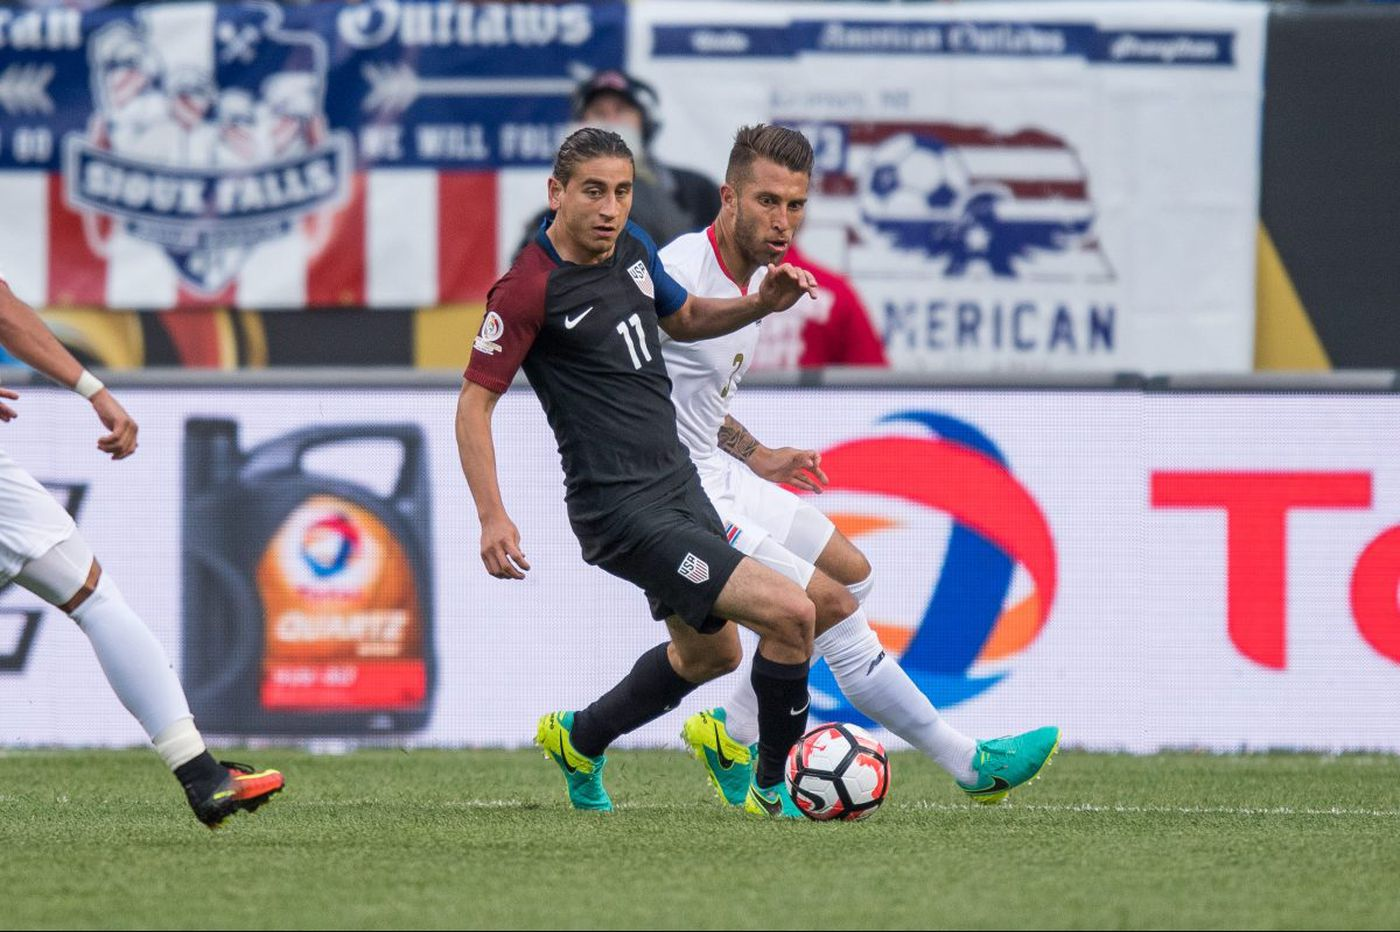 U.S. soccer team's World Cup qualifier vs. Costa Rica brings new challenge from familiar foe